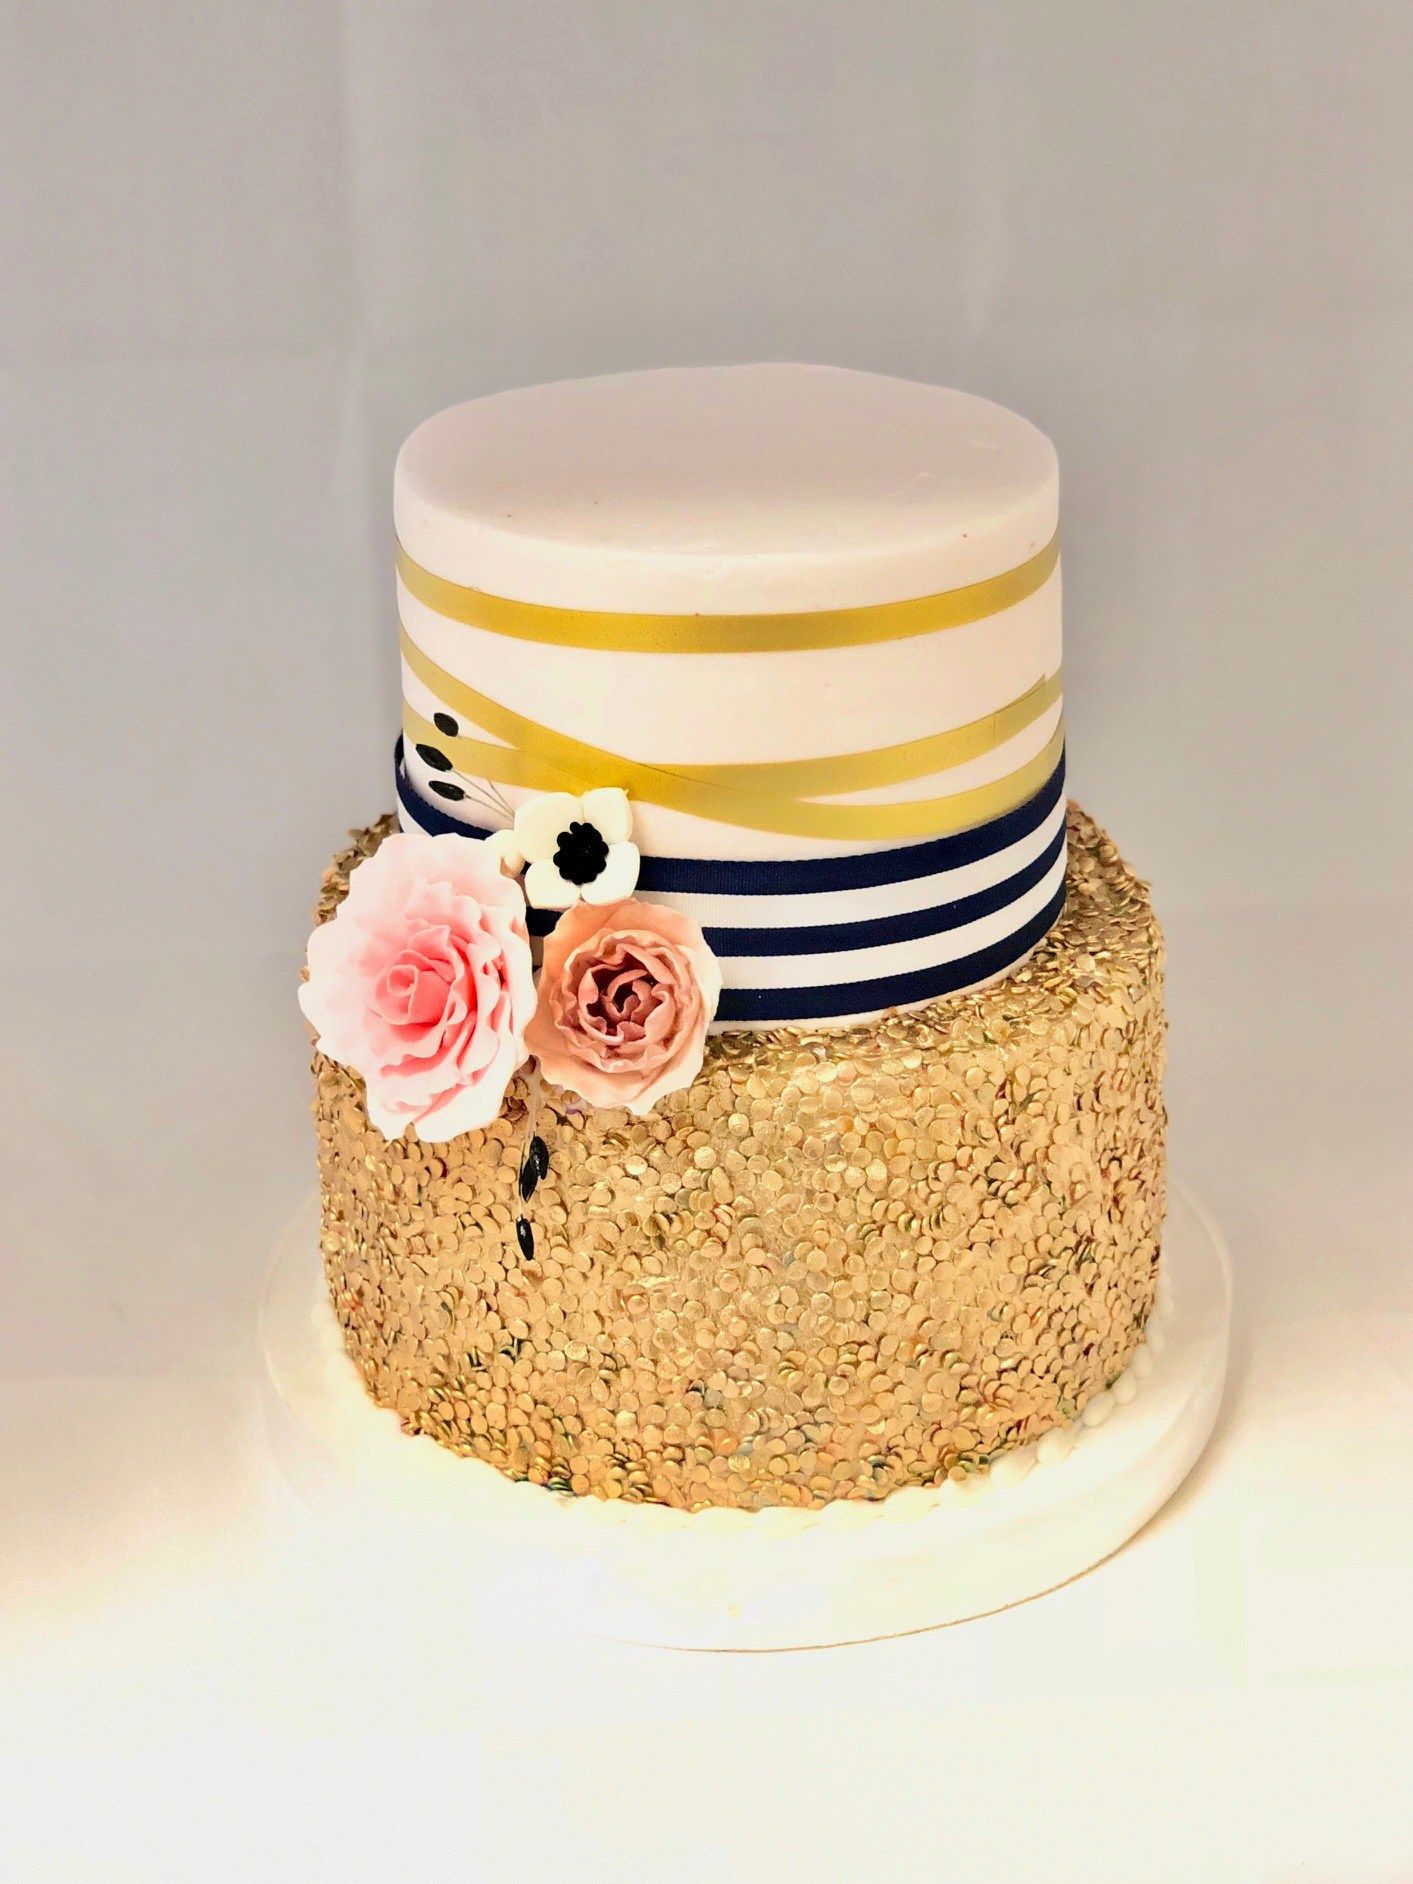 2 Tier Gold Quin Sprinkles & Ribbon Cake FB-129 2 Tier Gold Quin Sprinkles & Ribbon Cake FB-129 – Confection Perfection Cakes Online Ordering